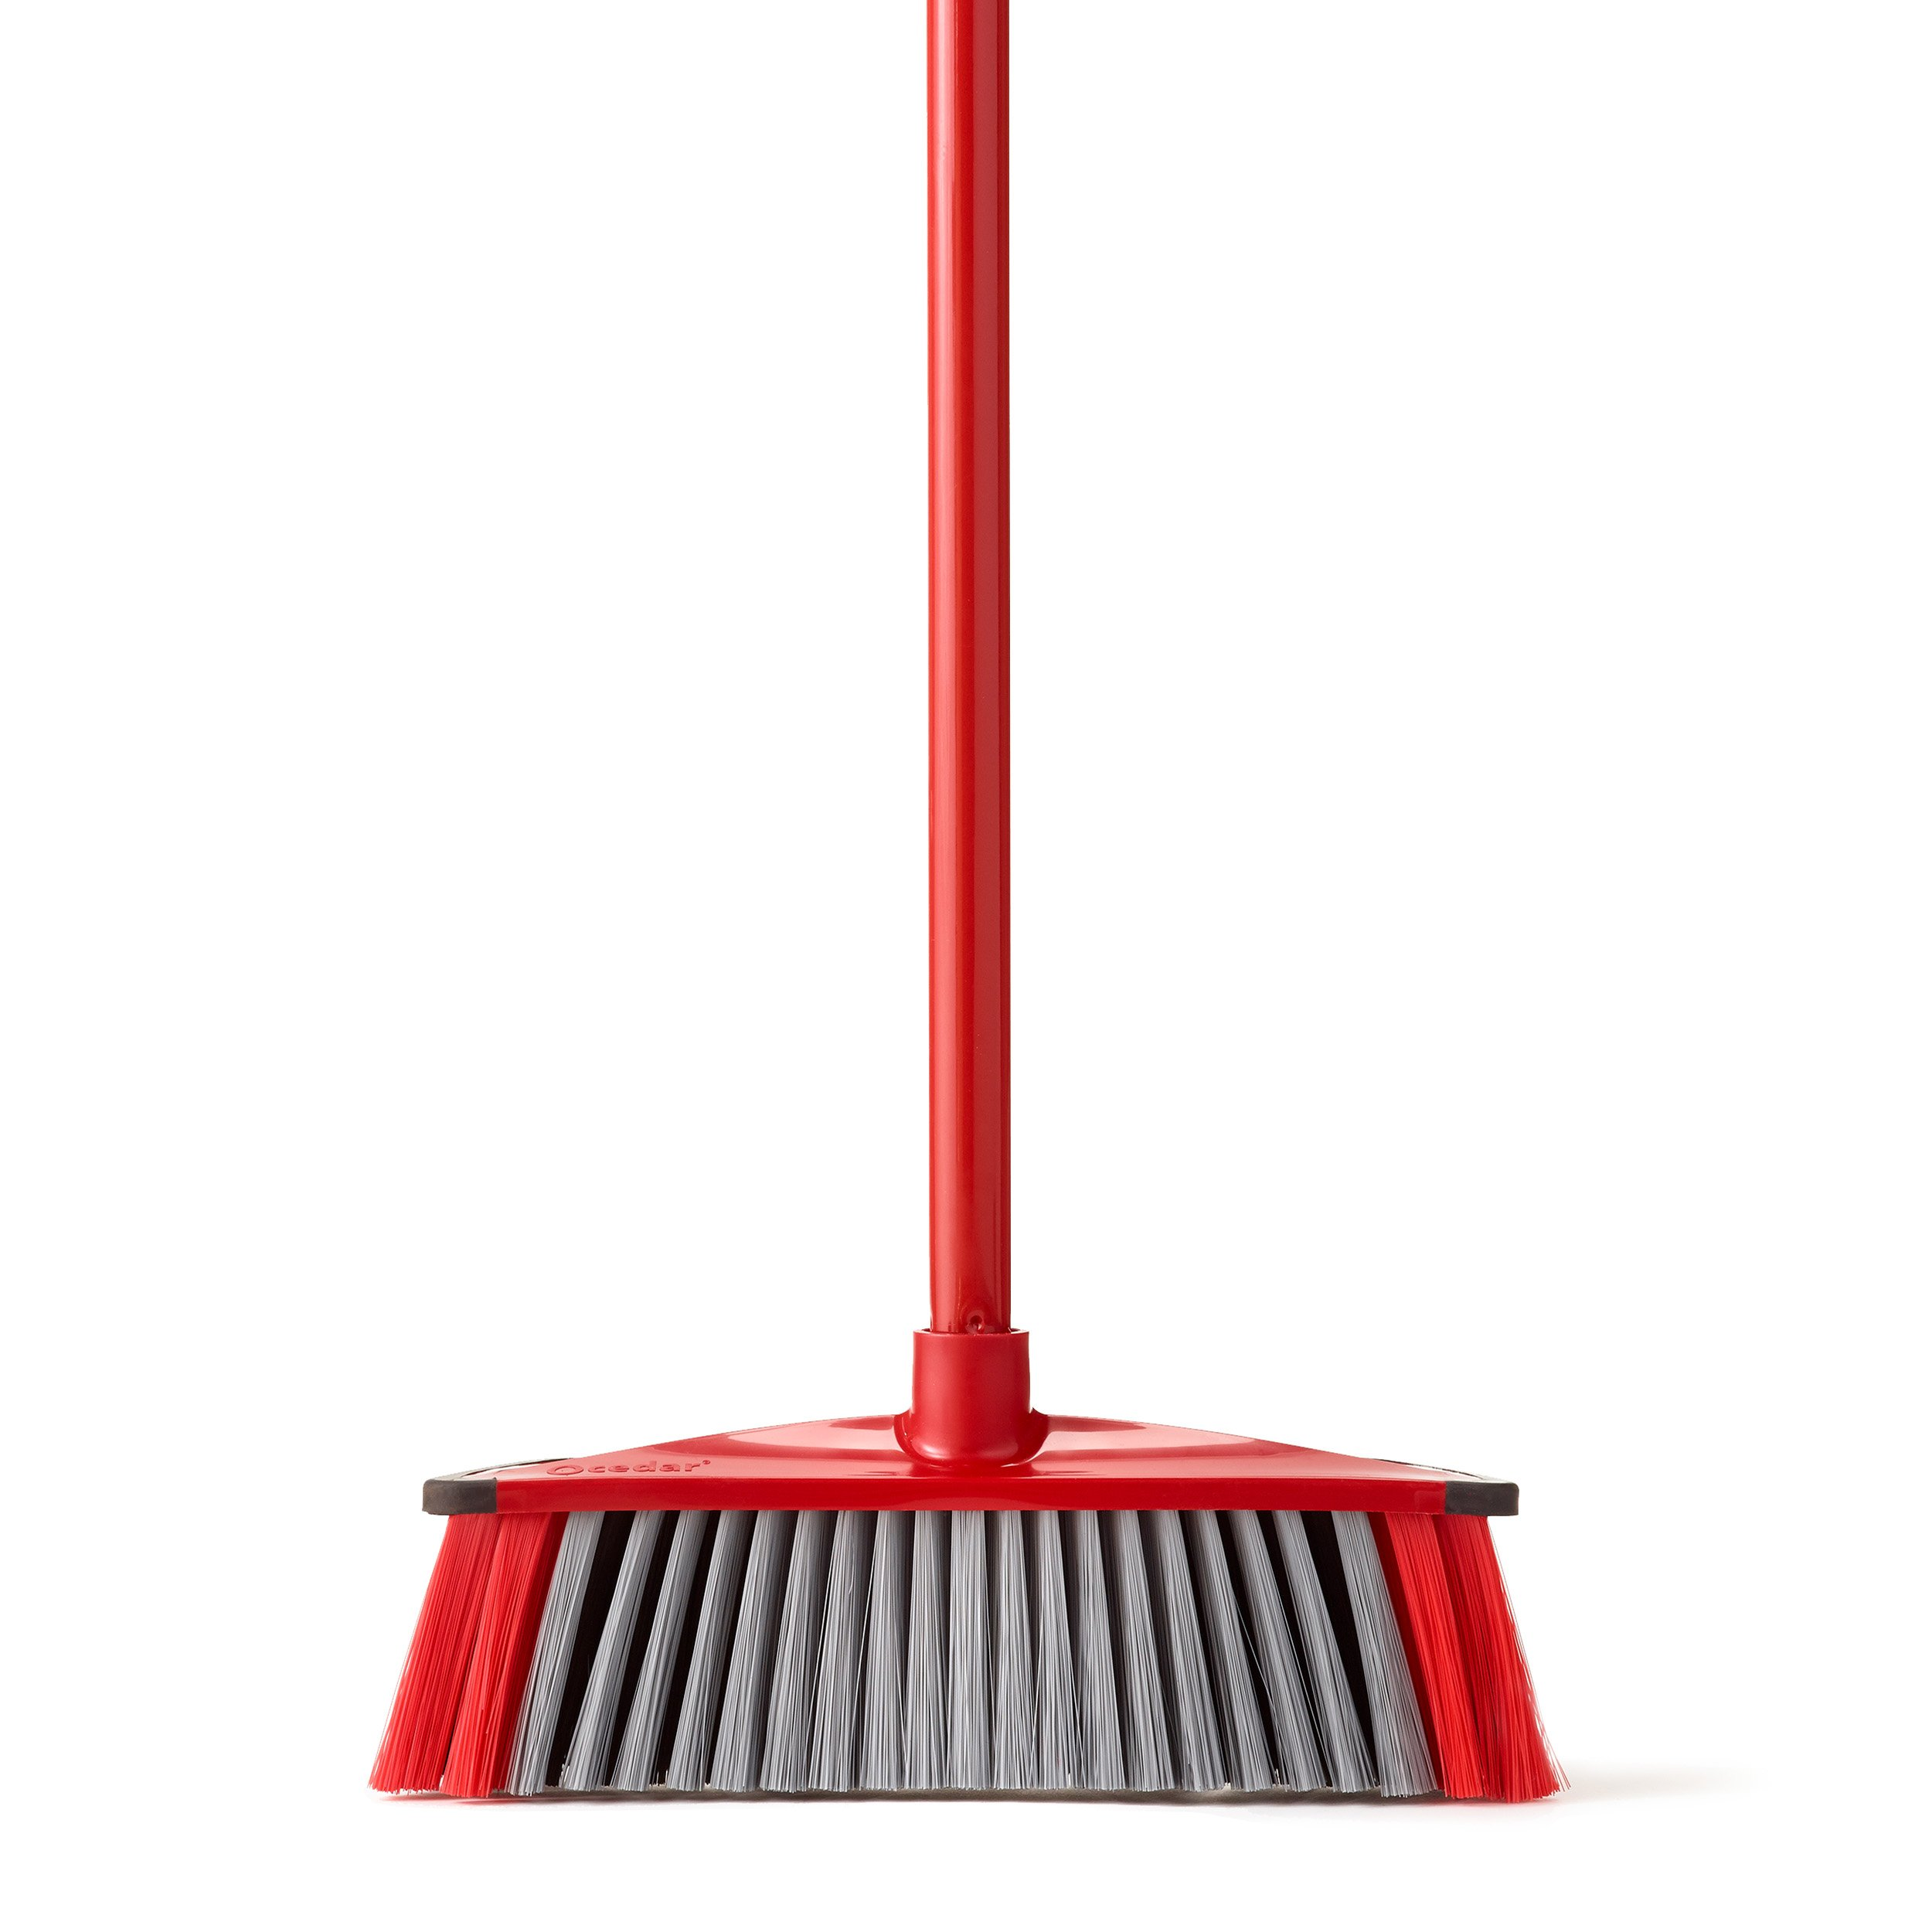 O-Cedar 3-Action Upright Broom by O-Cedar (Image #1)